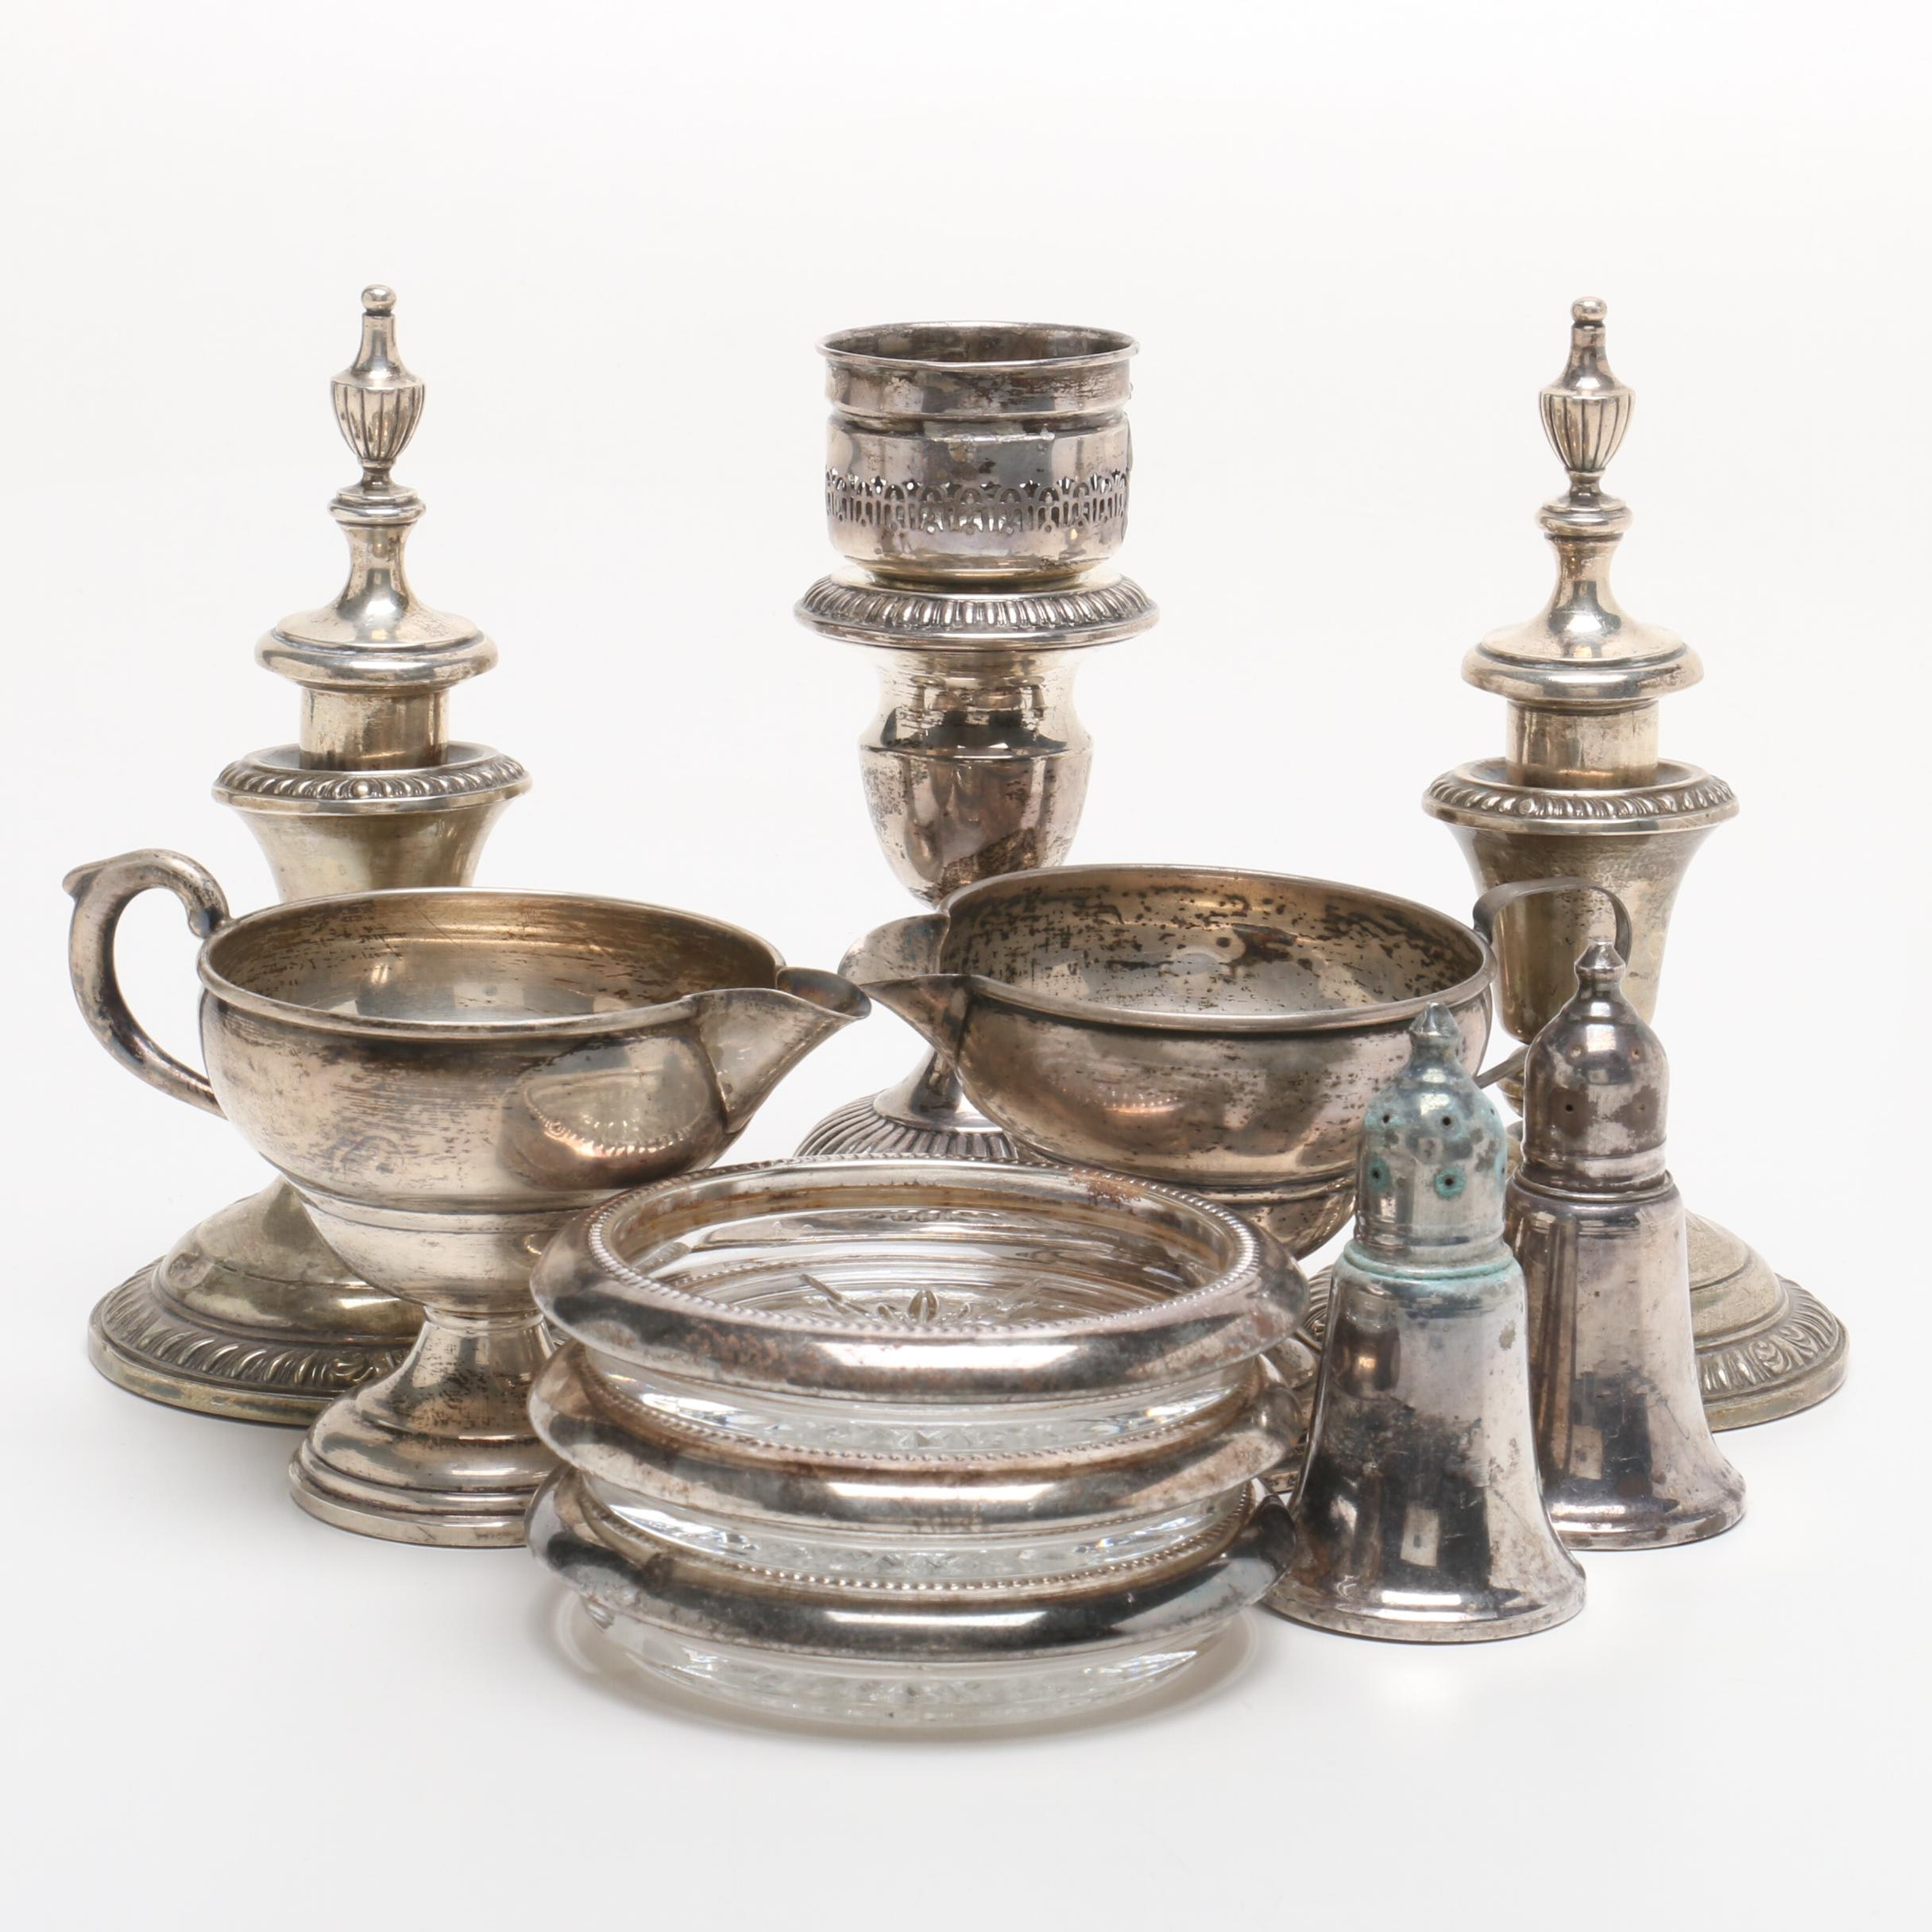 Frank M. Whiting Weighted Sterling Candle Holders and Tableware